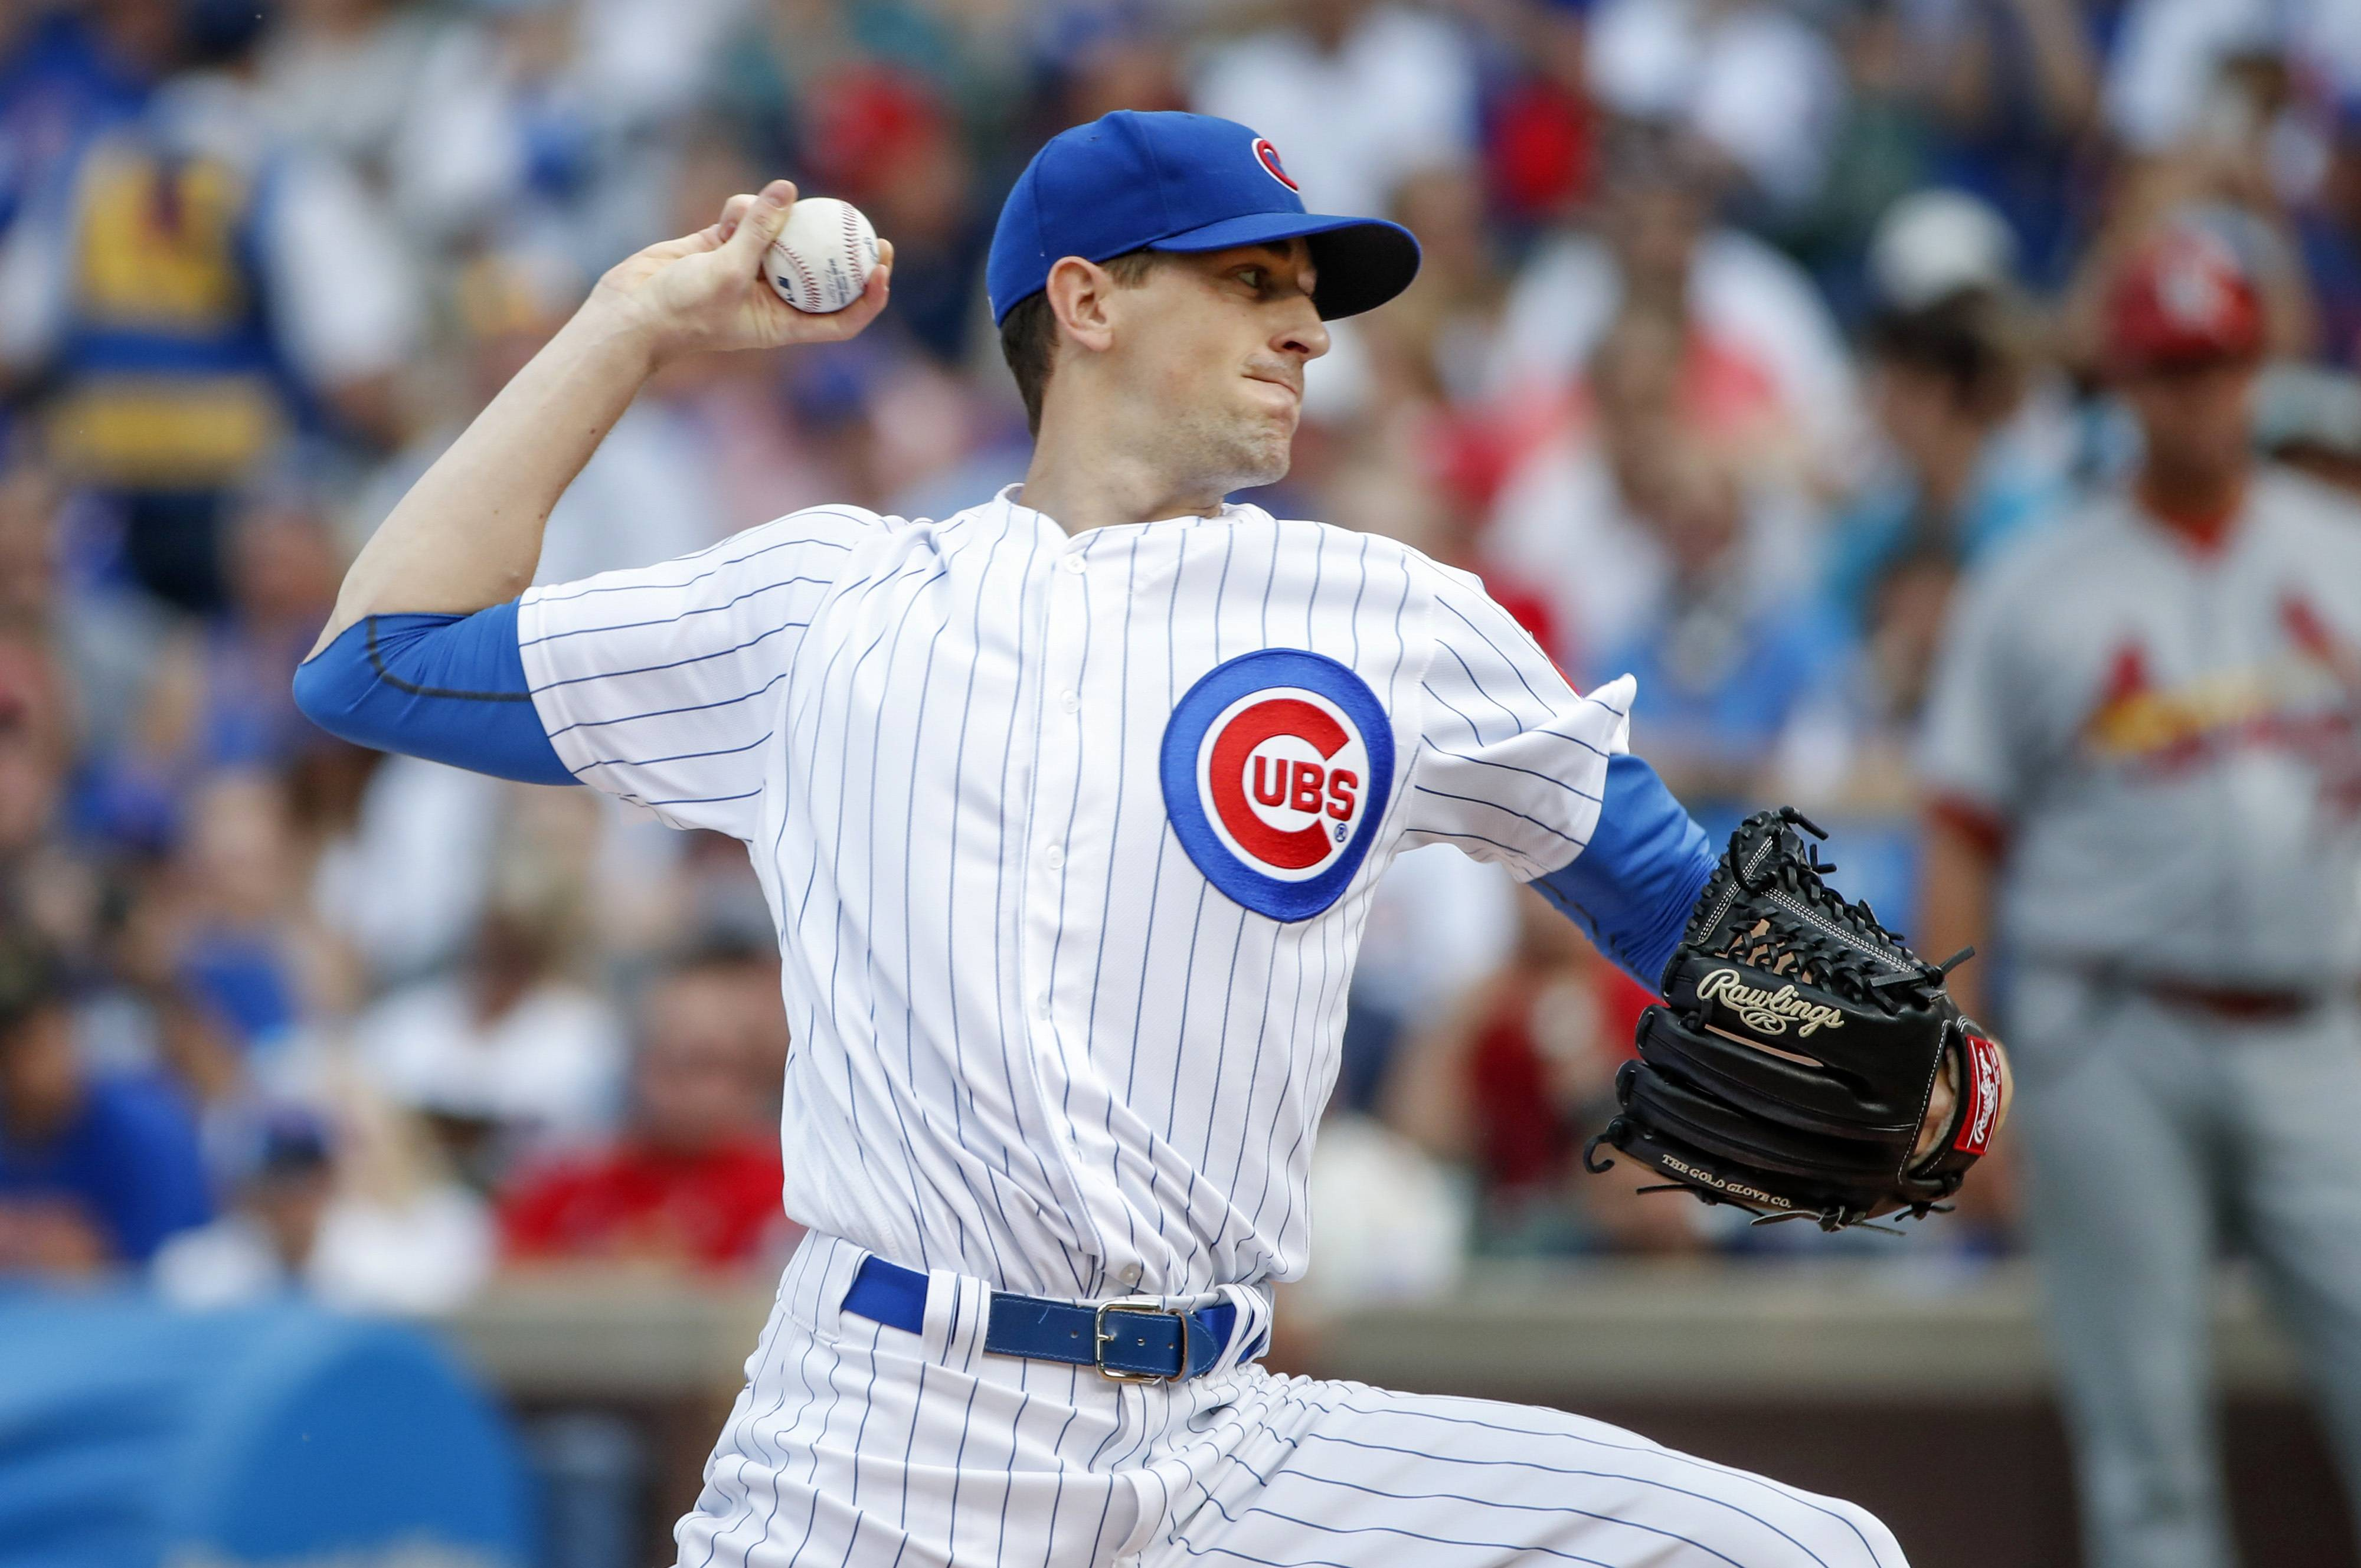 Chicago Cubs pitcher Kyle Hendricks will start Game 1 of the National League division series against the Washington Nationals.